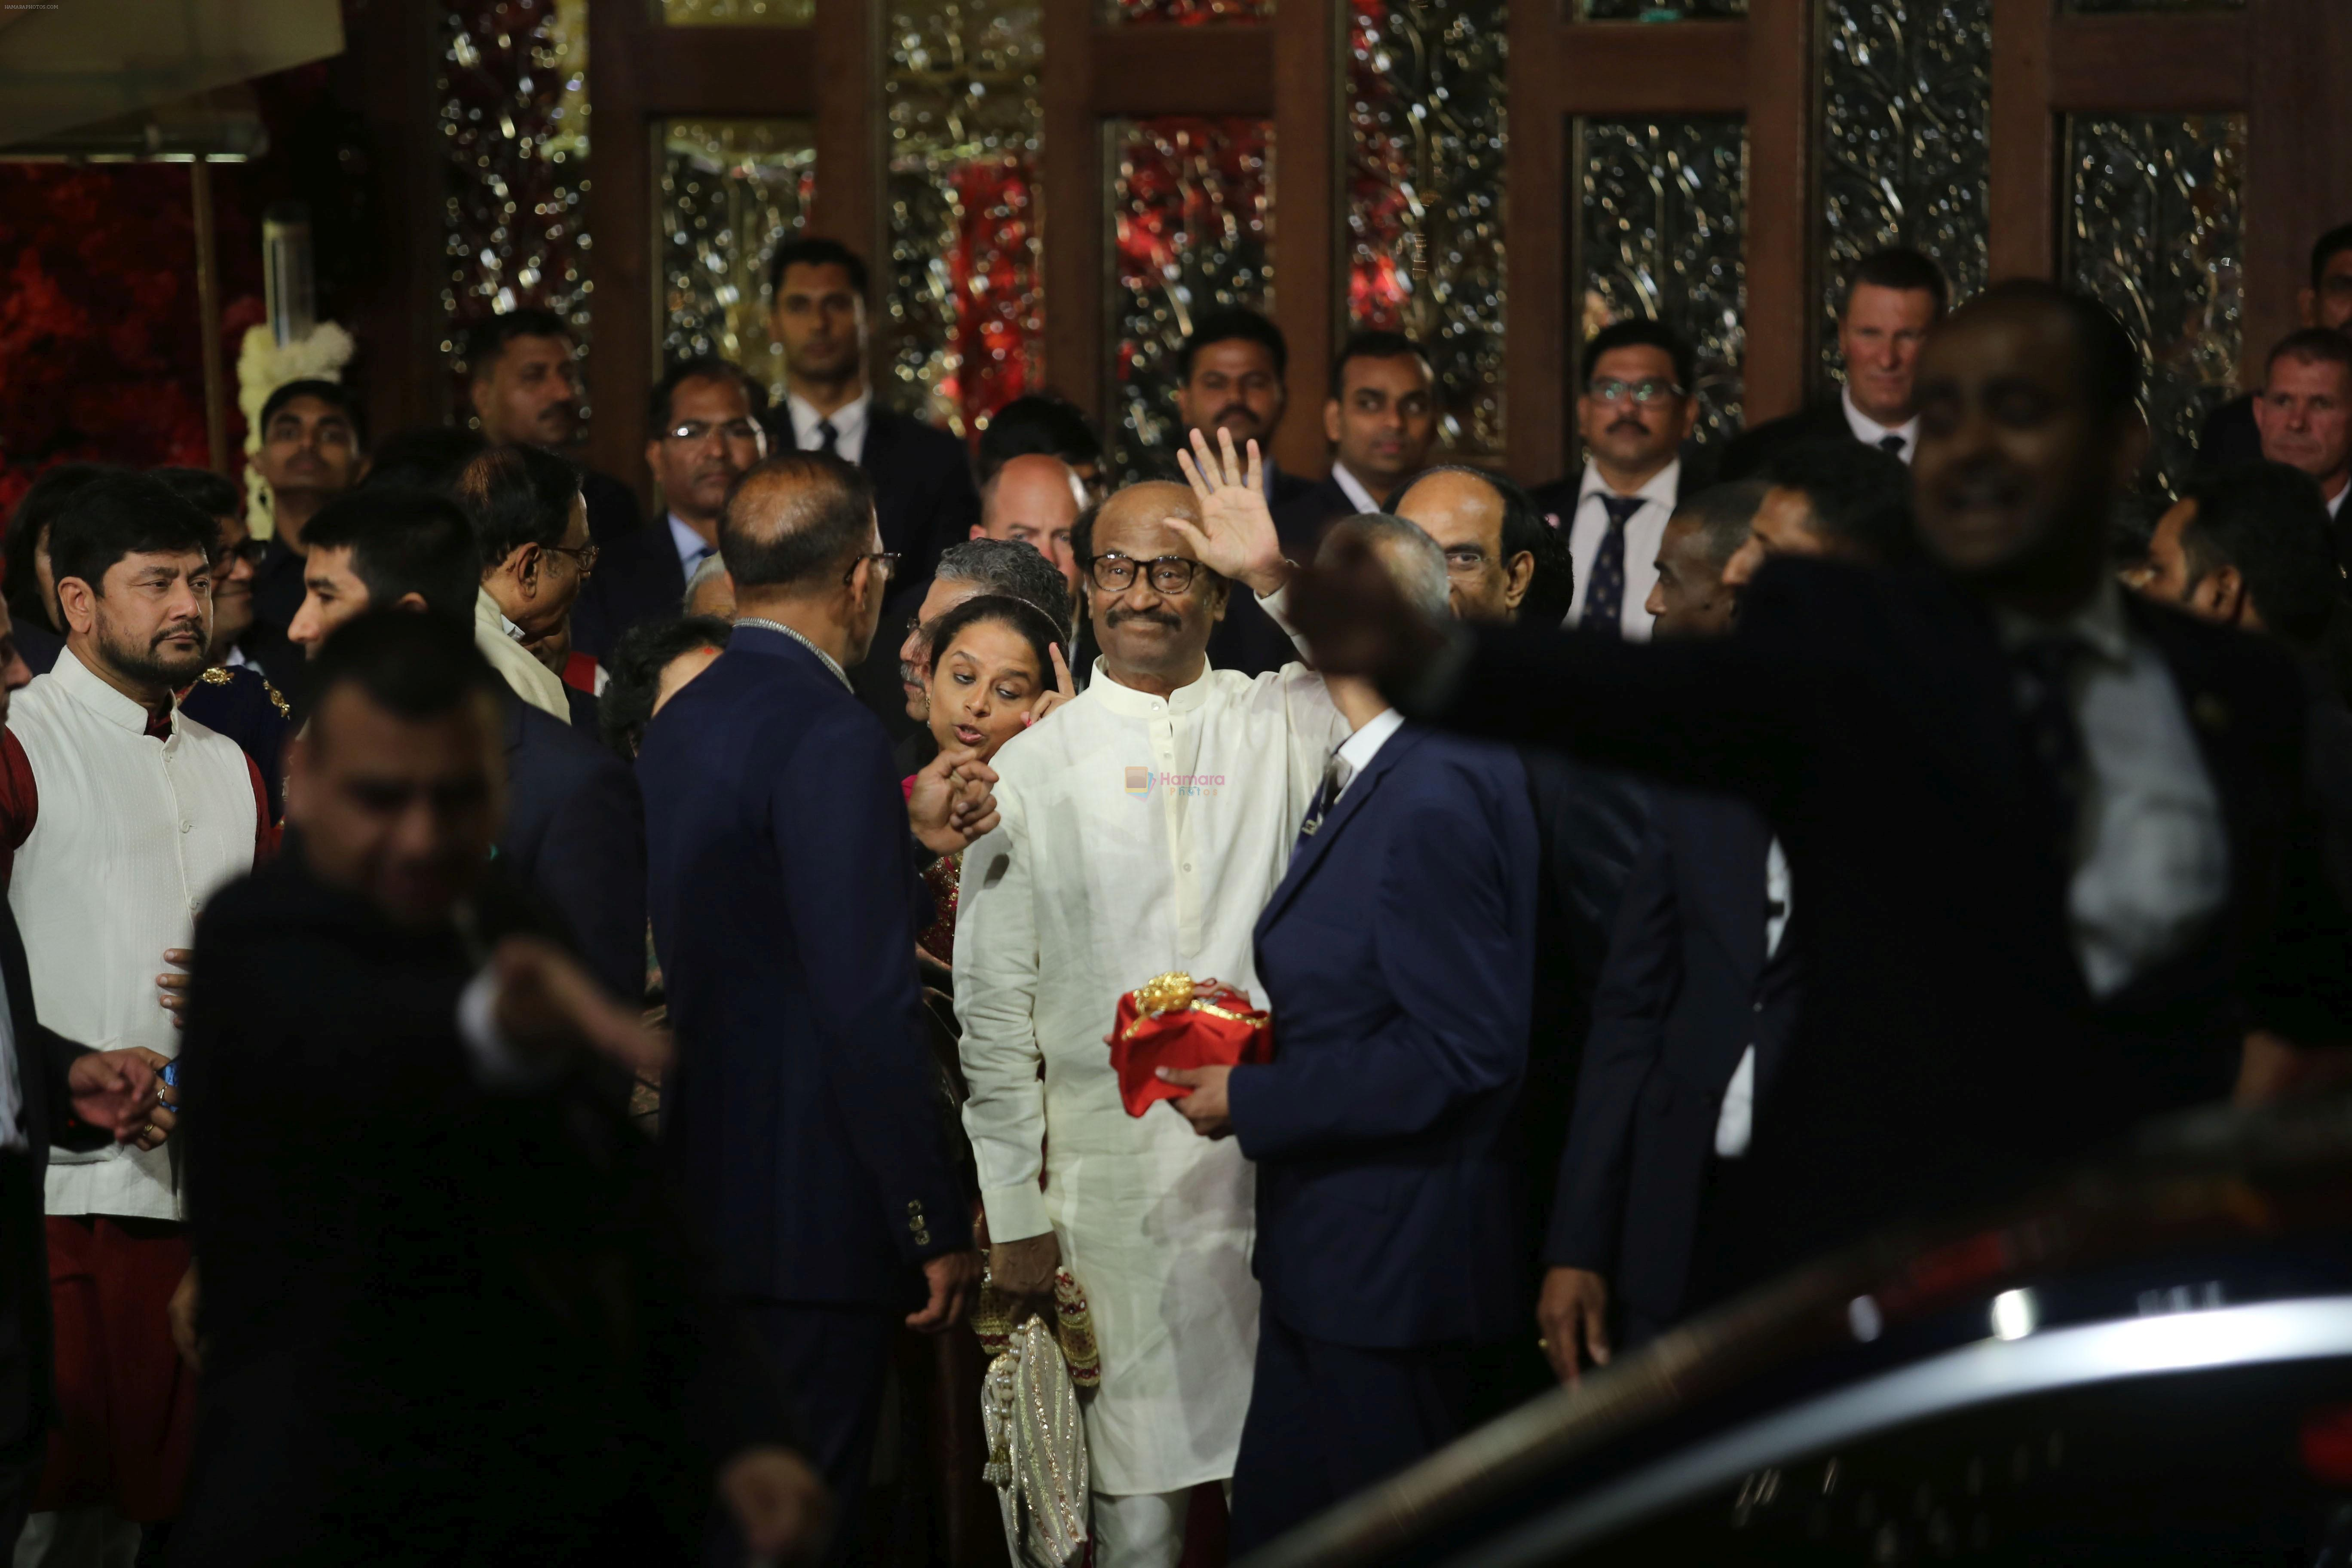 Rajnikanth at Isha Ambani and Anand Piramal's wedding on 12th Dec 2018